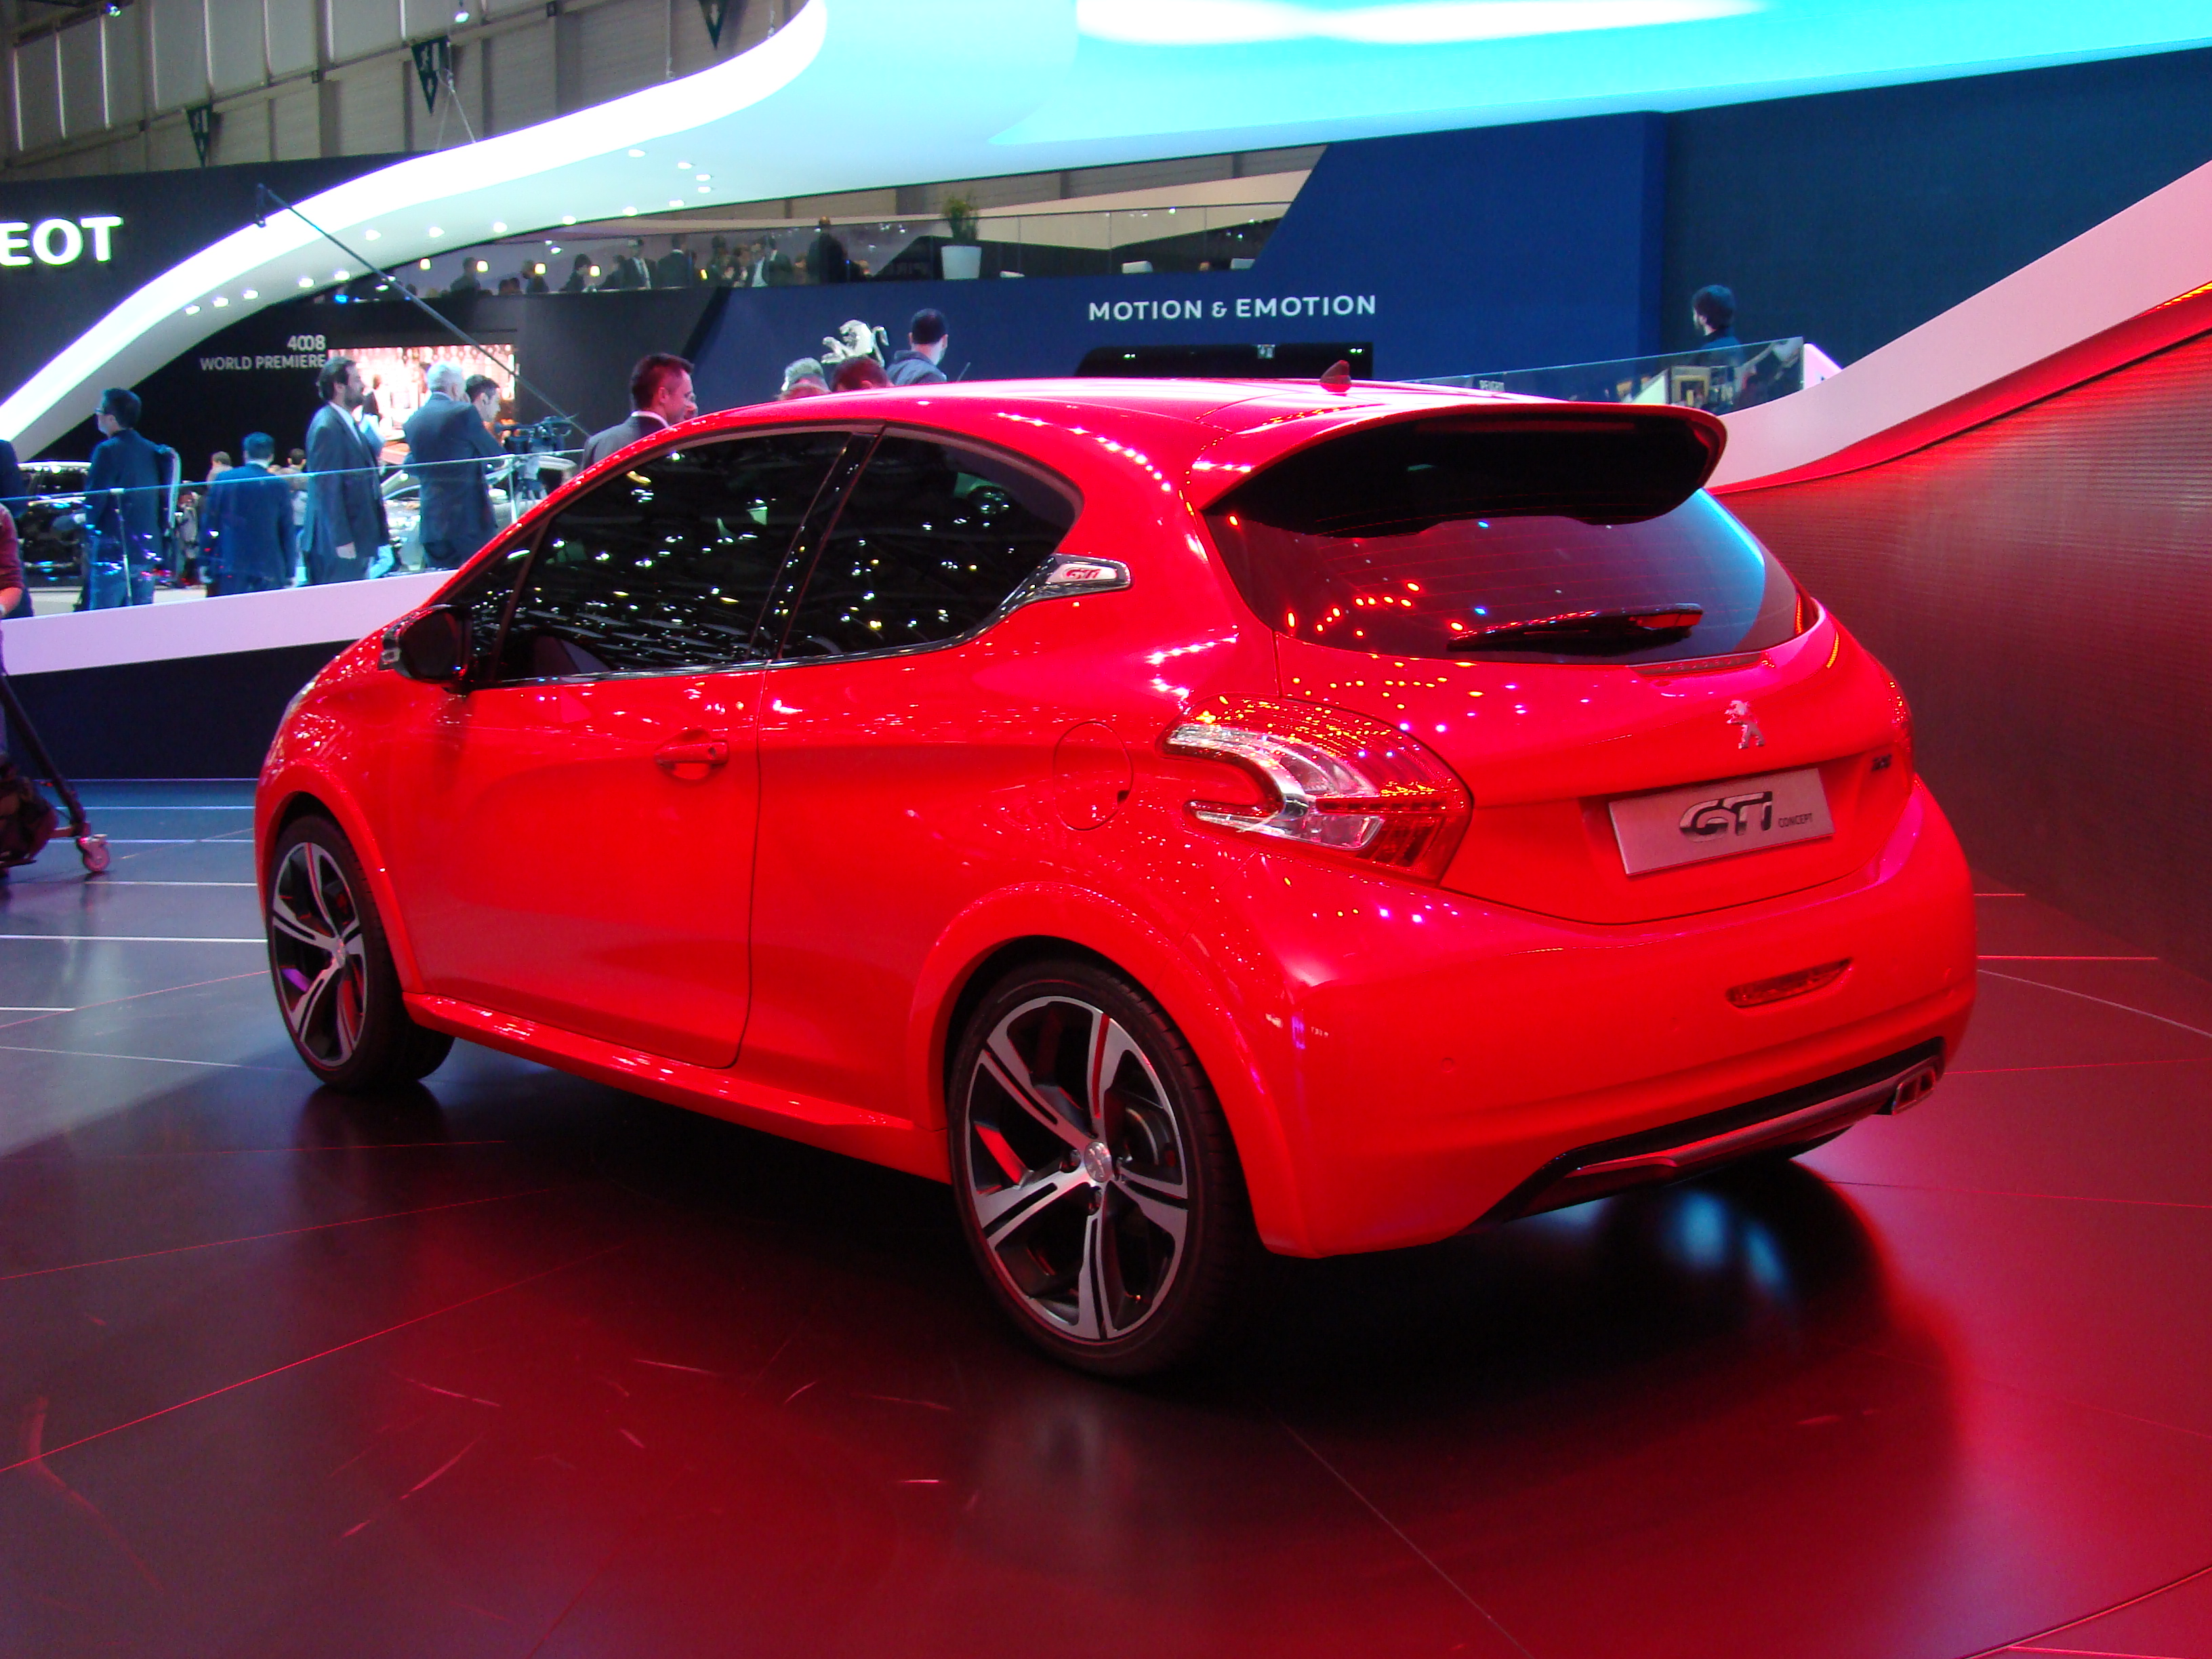 vid o en direct de gen ve 2012 peugeot 208 gti concept une renaissance. Black Bedroom Furniture Sets. Home Design Ideas